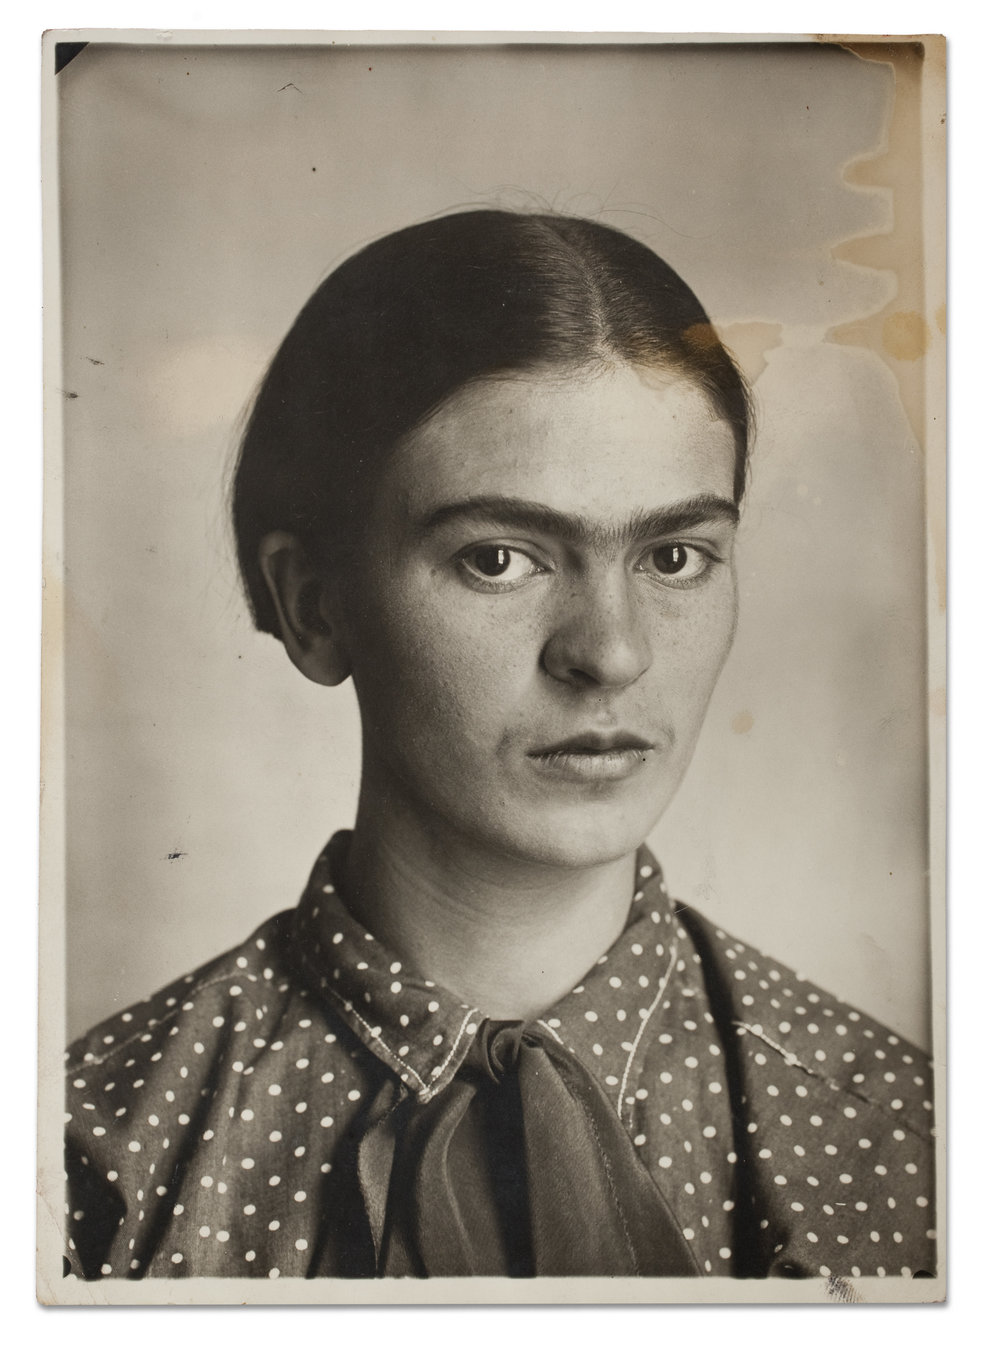 Frida Kahlo, c. 1926. Museo Frida Kahlo. © Diego Riviera and Frida Kahlo Archives, Banco de México, Fiduciary of the Trust of the Diego Riviera and Frida Kahlo Museums.